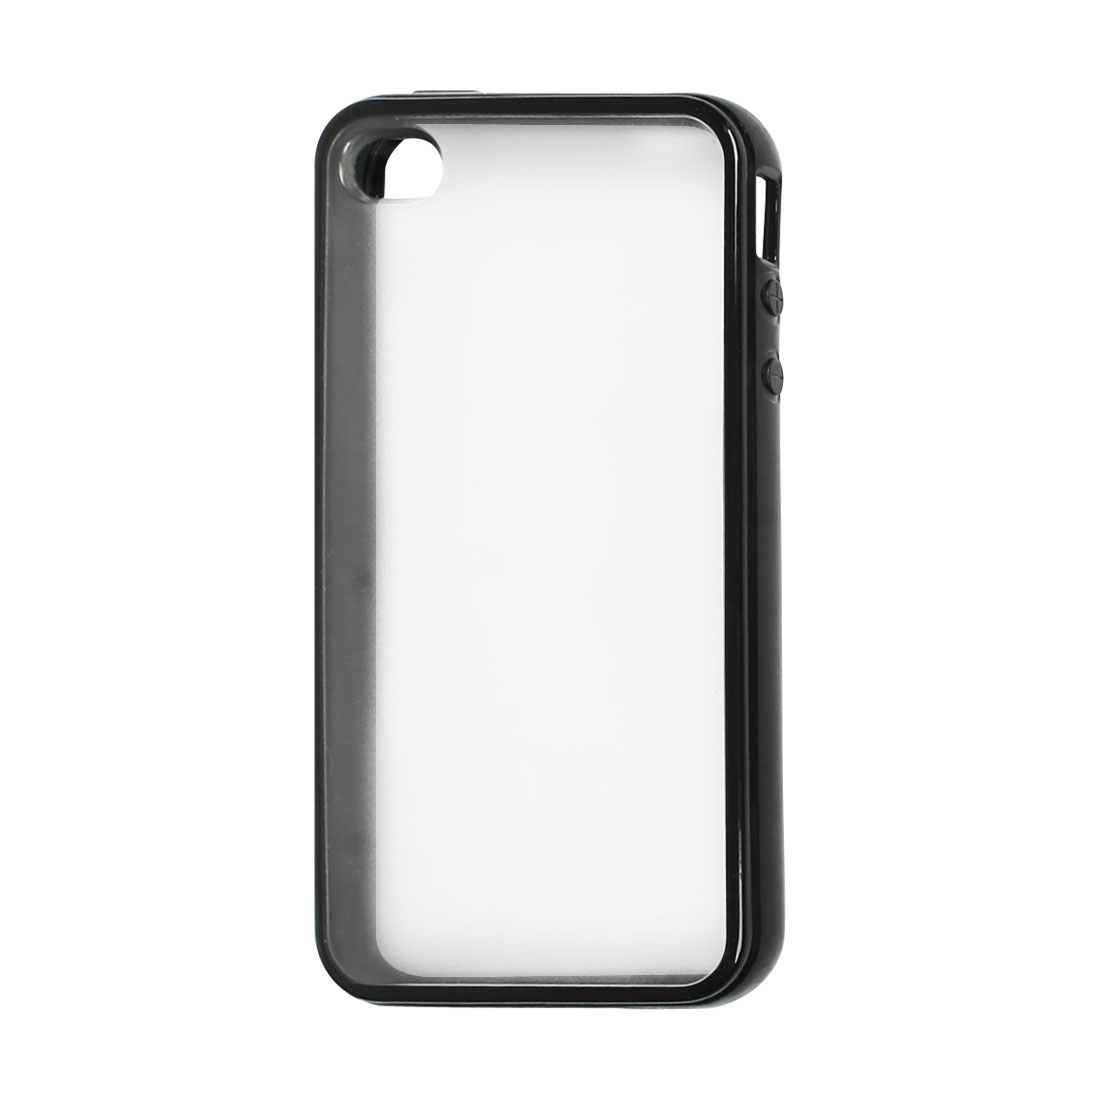 Black Clear Plastic TPU Cover Case Protective for iPhone 4 4S